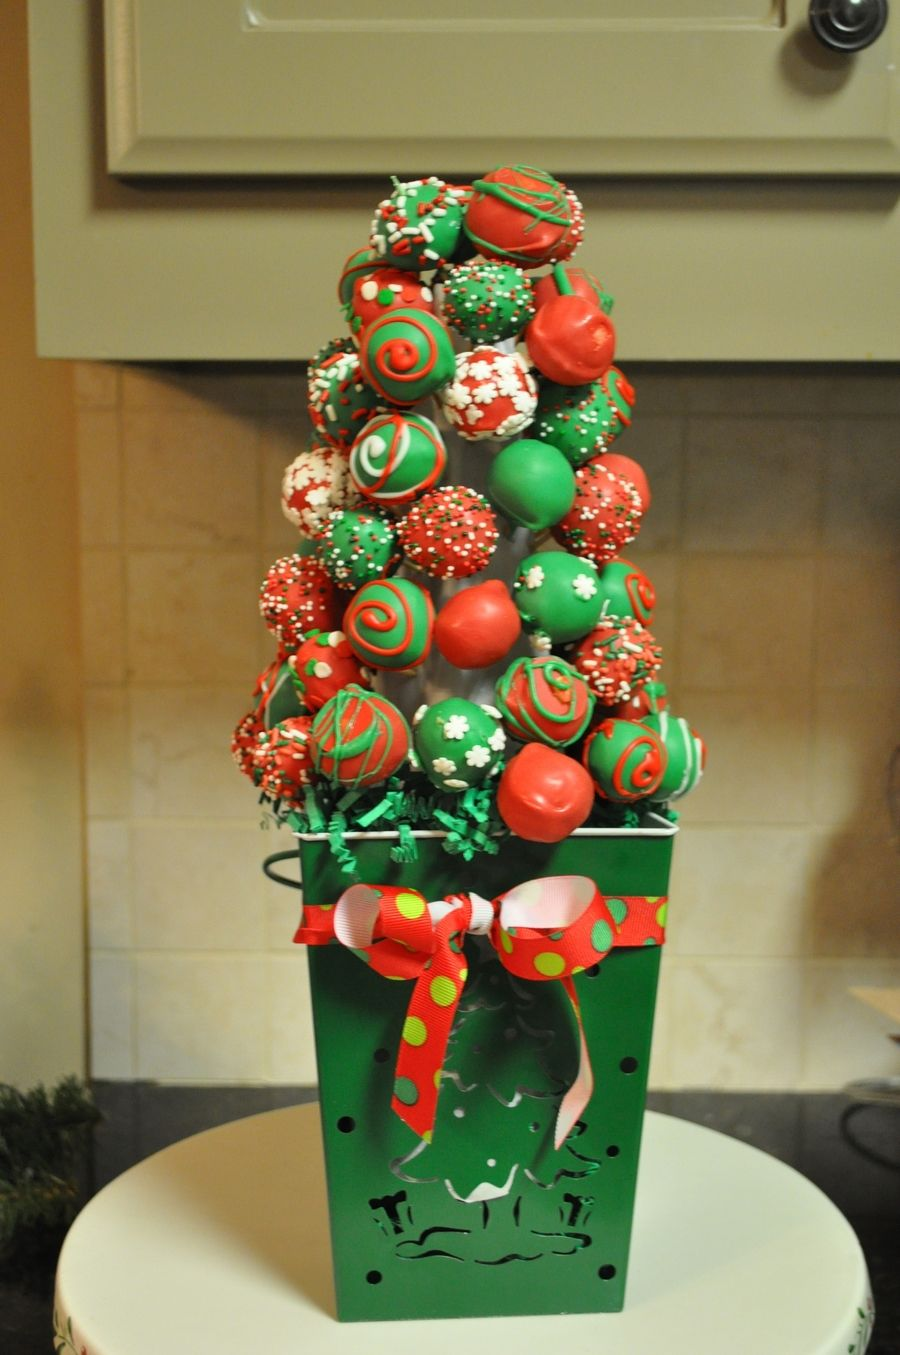 Cake Ball Christmas Tree My 1st attempt making a Cake Ball ...